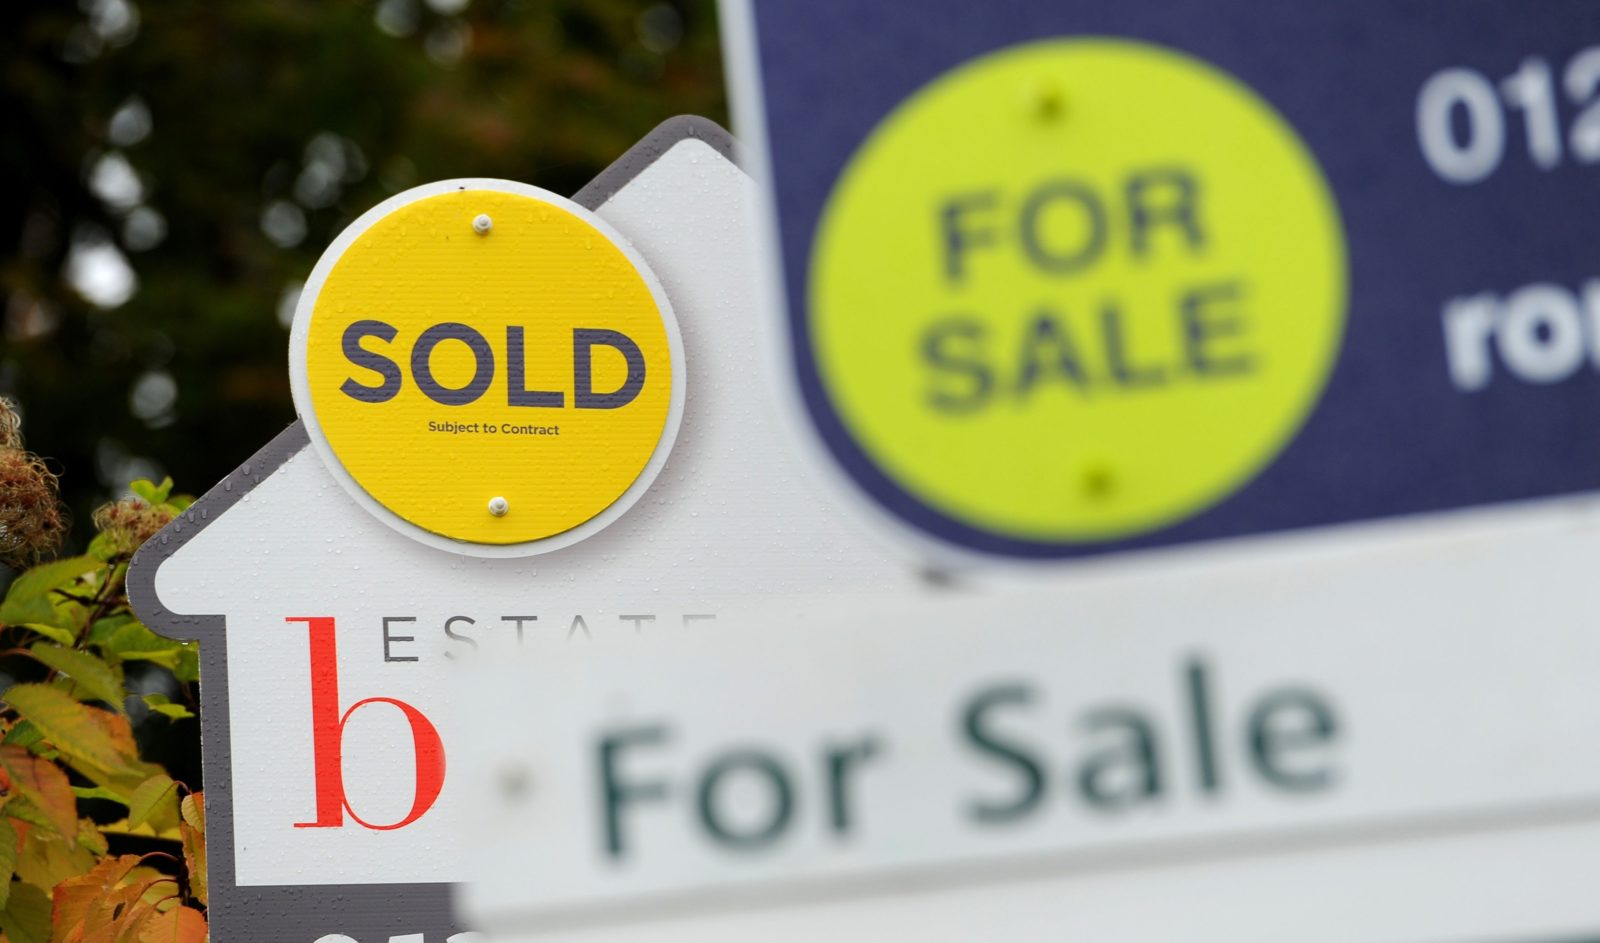 Buying a house should be as easy as online banking, Esther McVey says